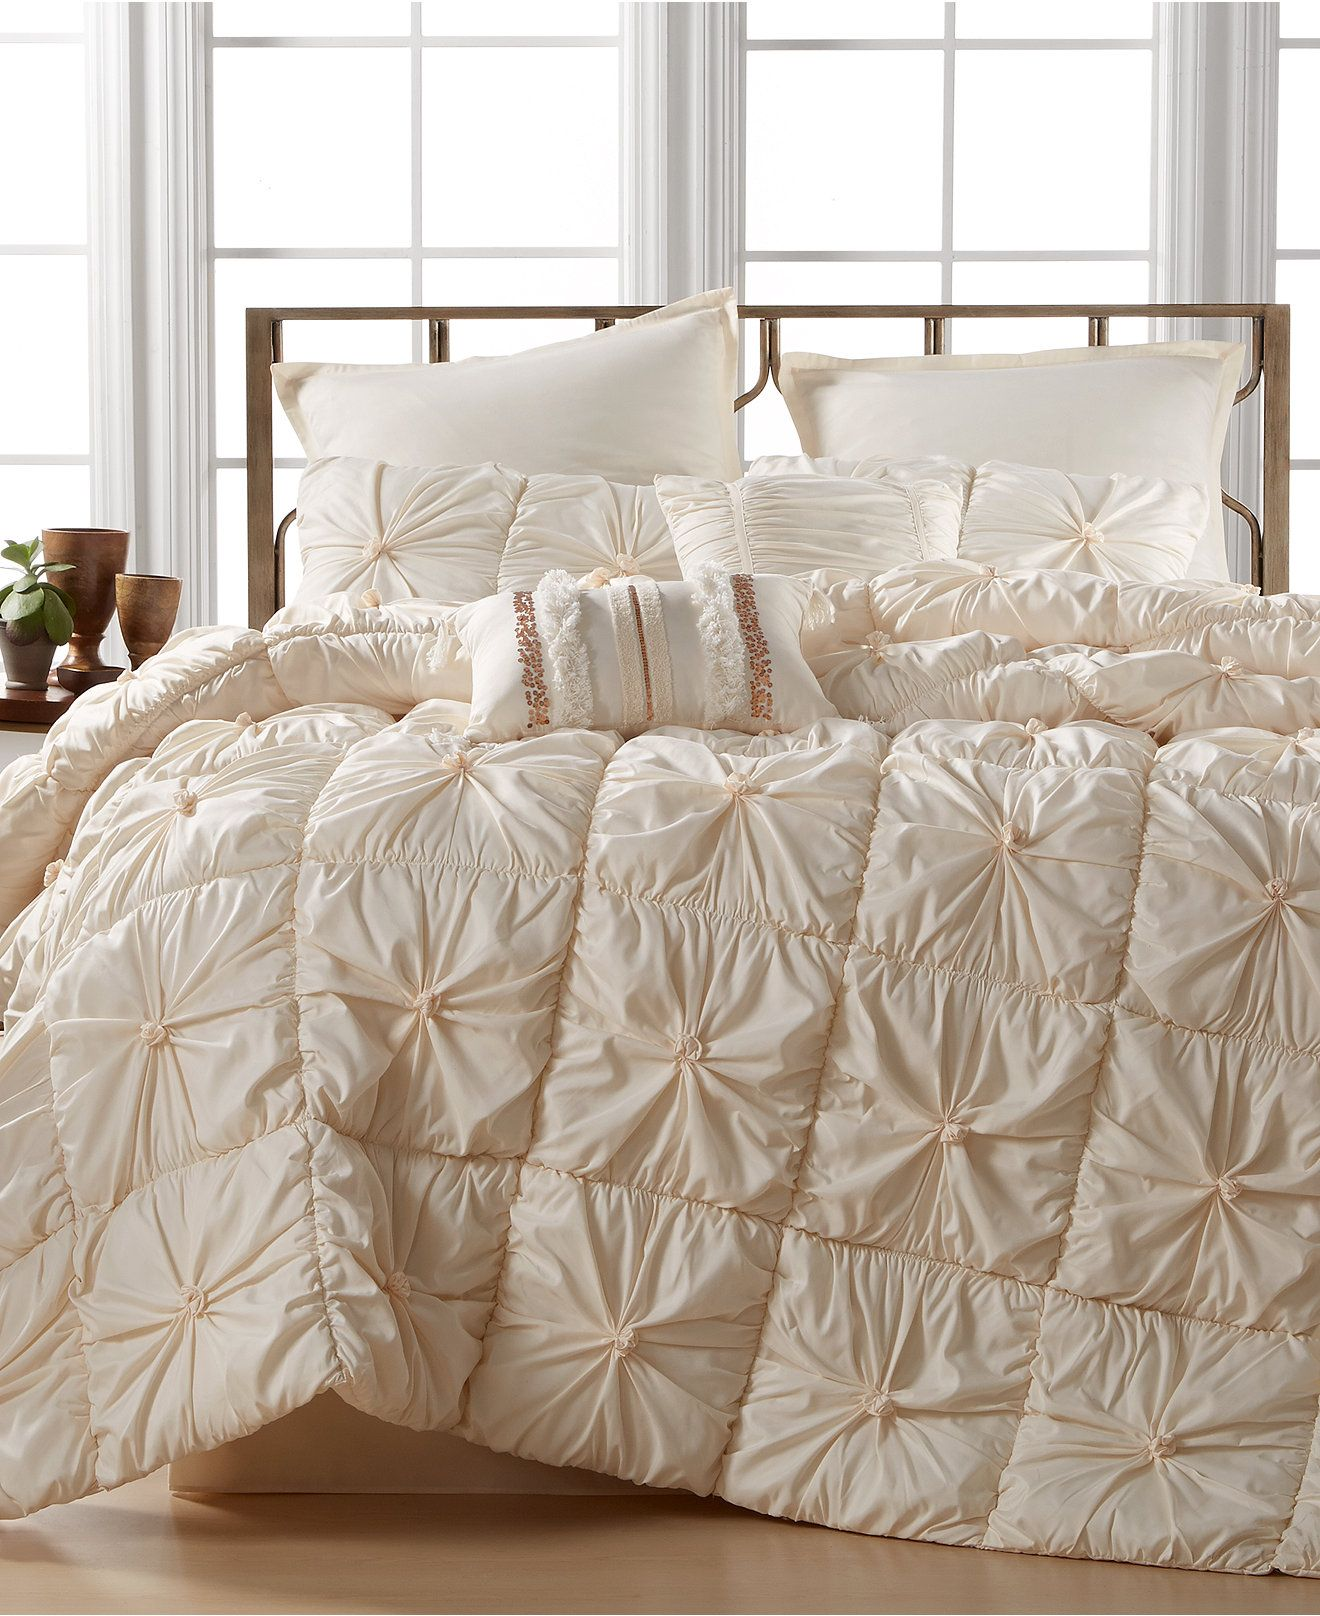 Marrakesh Tufted 8 Pc Comforter Sets Only At Macy S Bed In A Bag